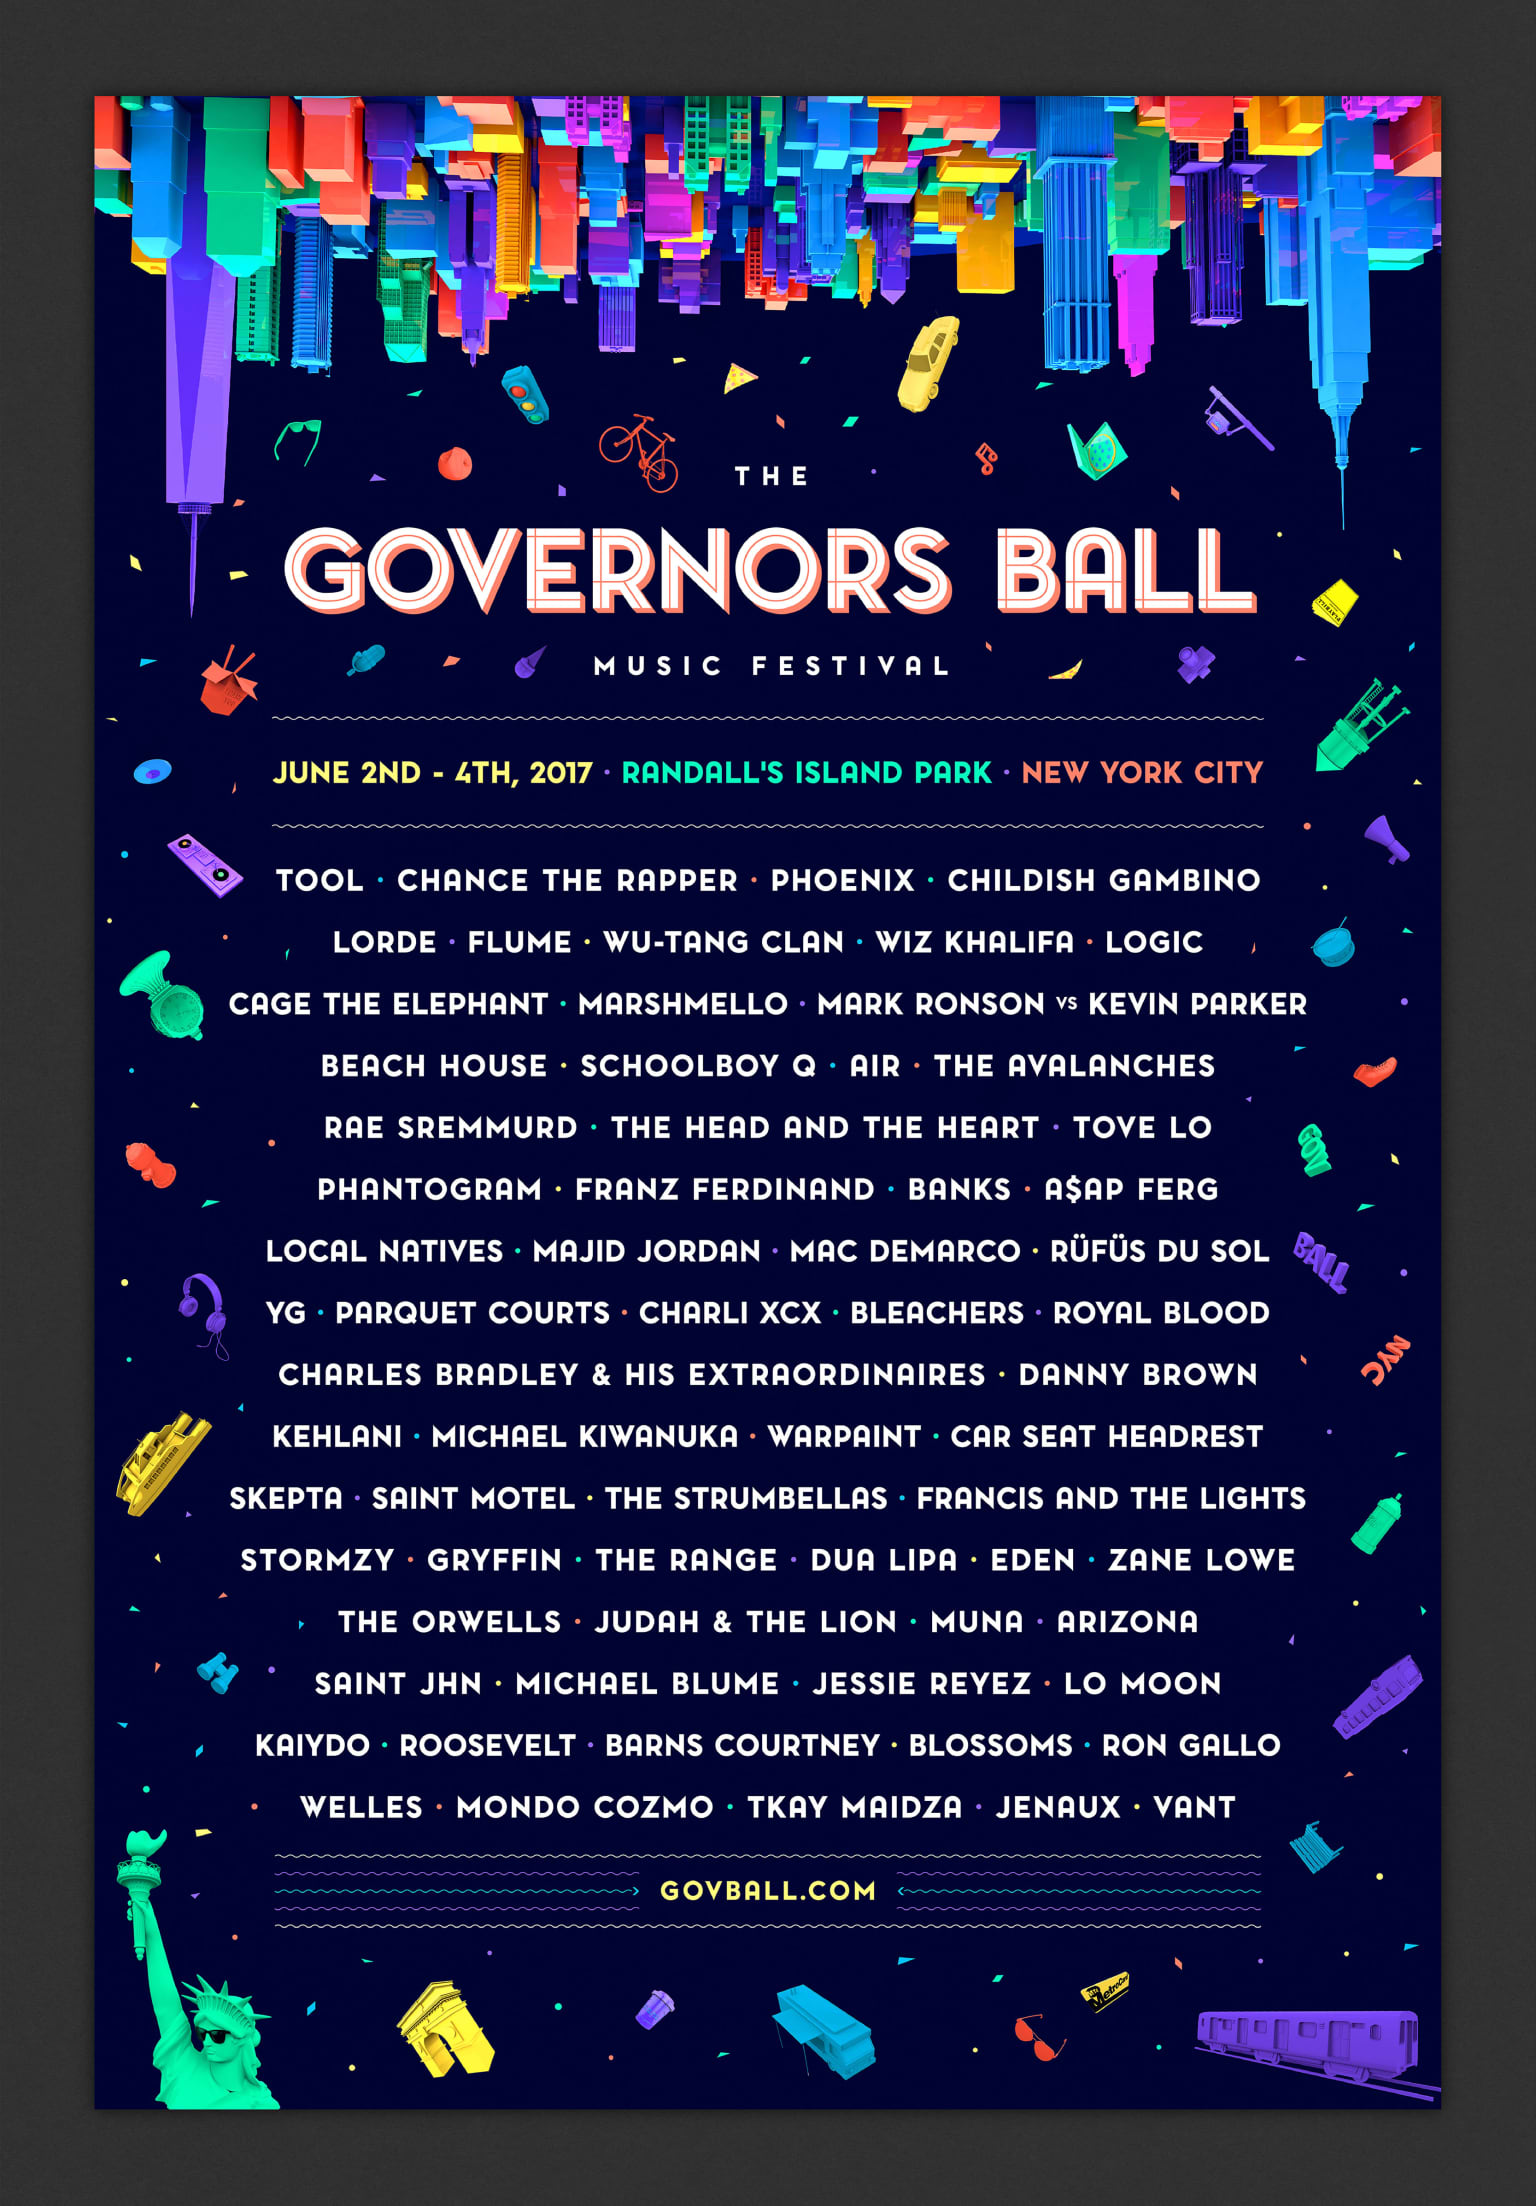 The Governors Ball Music Festival 2017